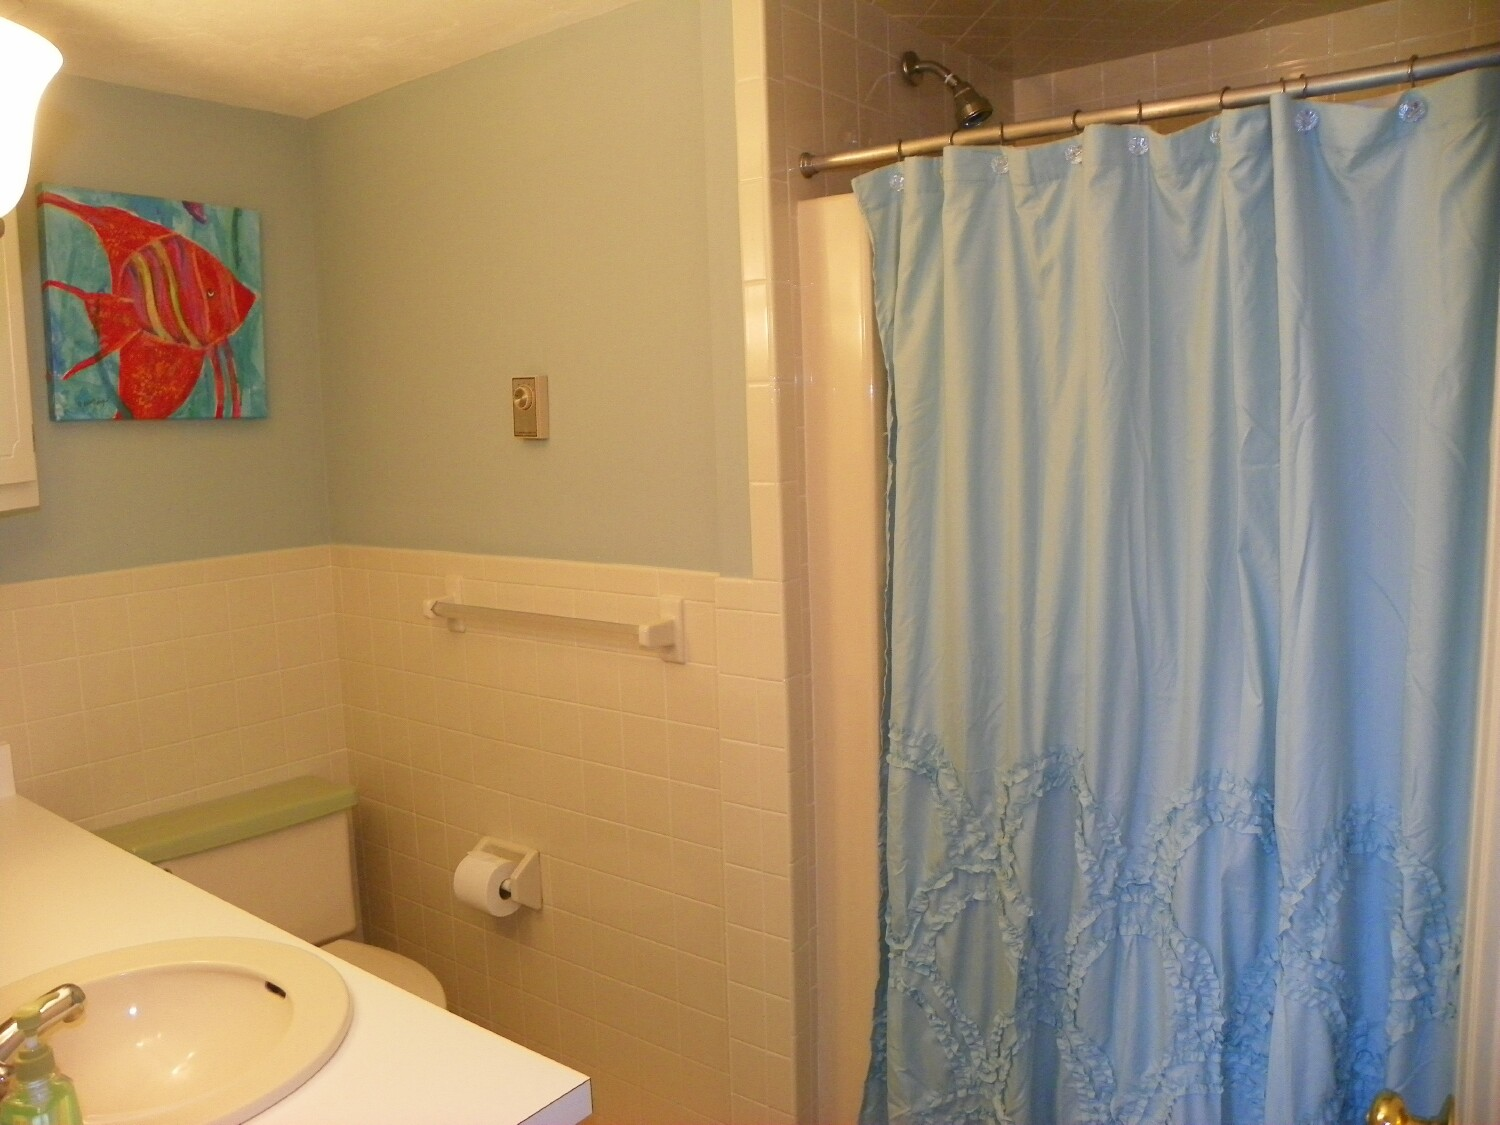 Master Bath at 6 Captain Keavy Way, West Dennis, MA for sale by Cranberry Real Estate 508-394-1700